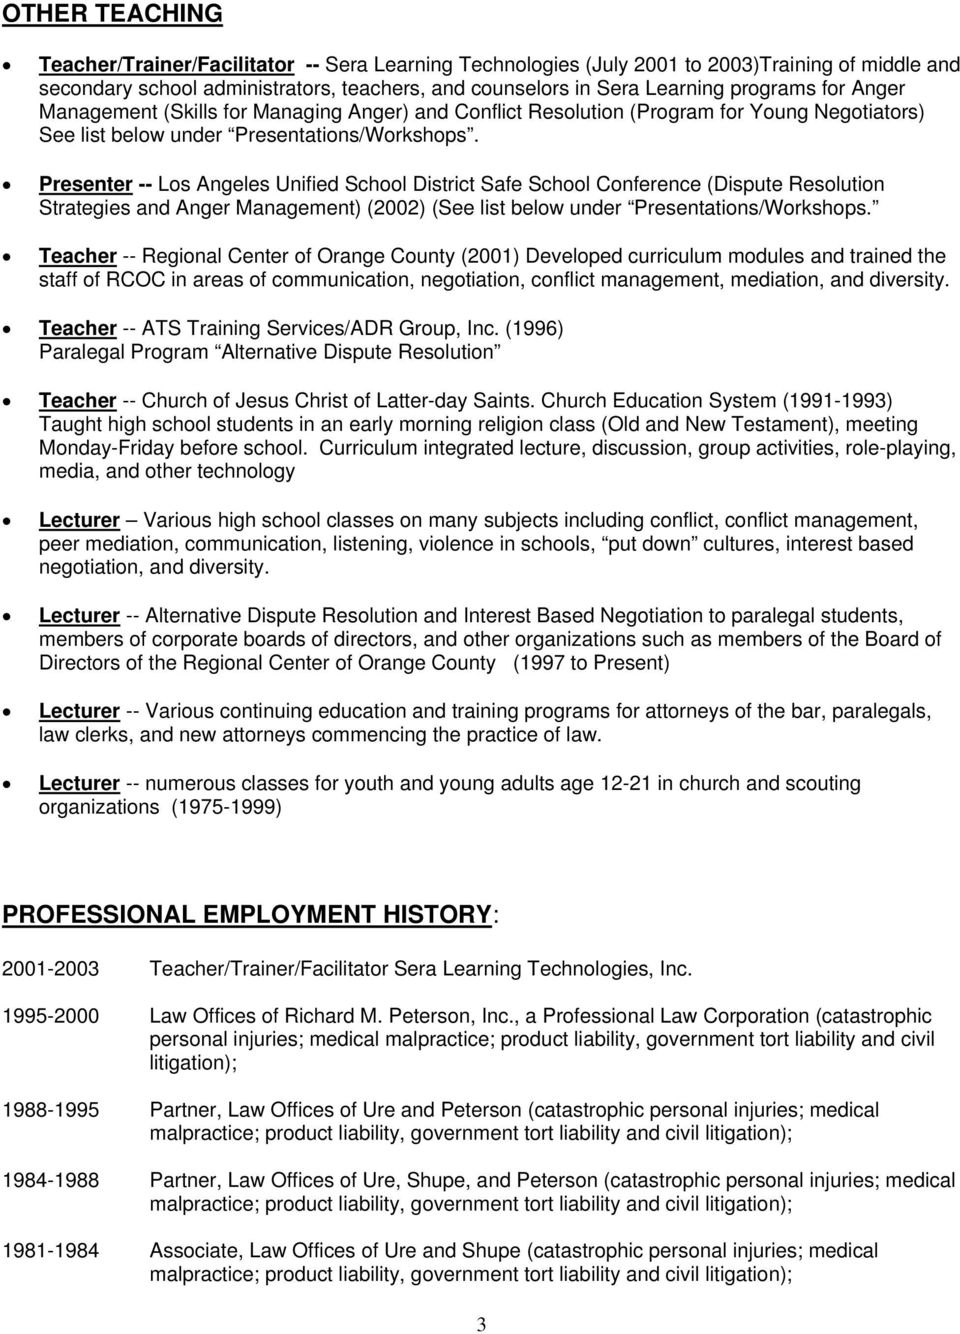 Presenter -- Los Angeles Unified School District Safe School Conference (Dispute Resolution Strategies and Anger Management) (2002) (See list below under Presentations/Workshops.